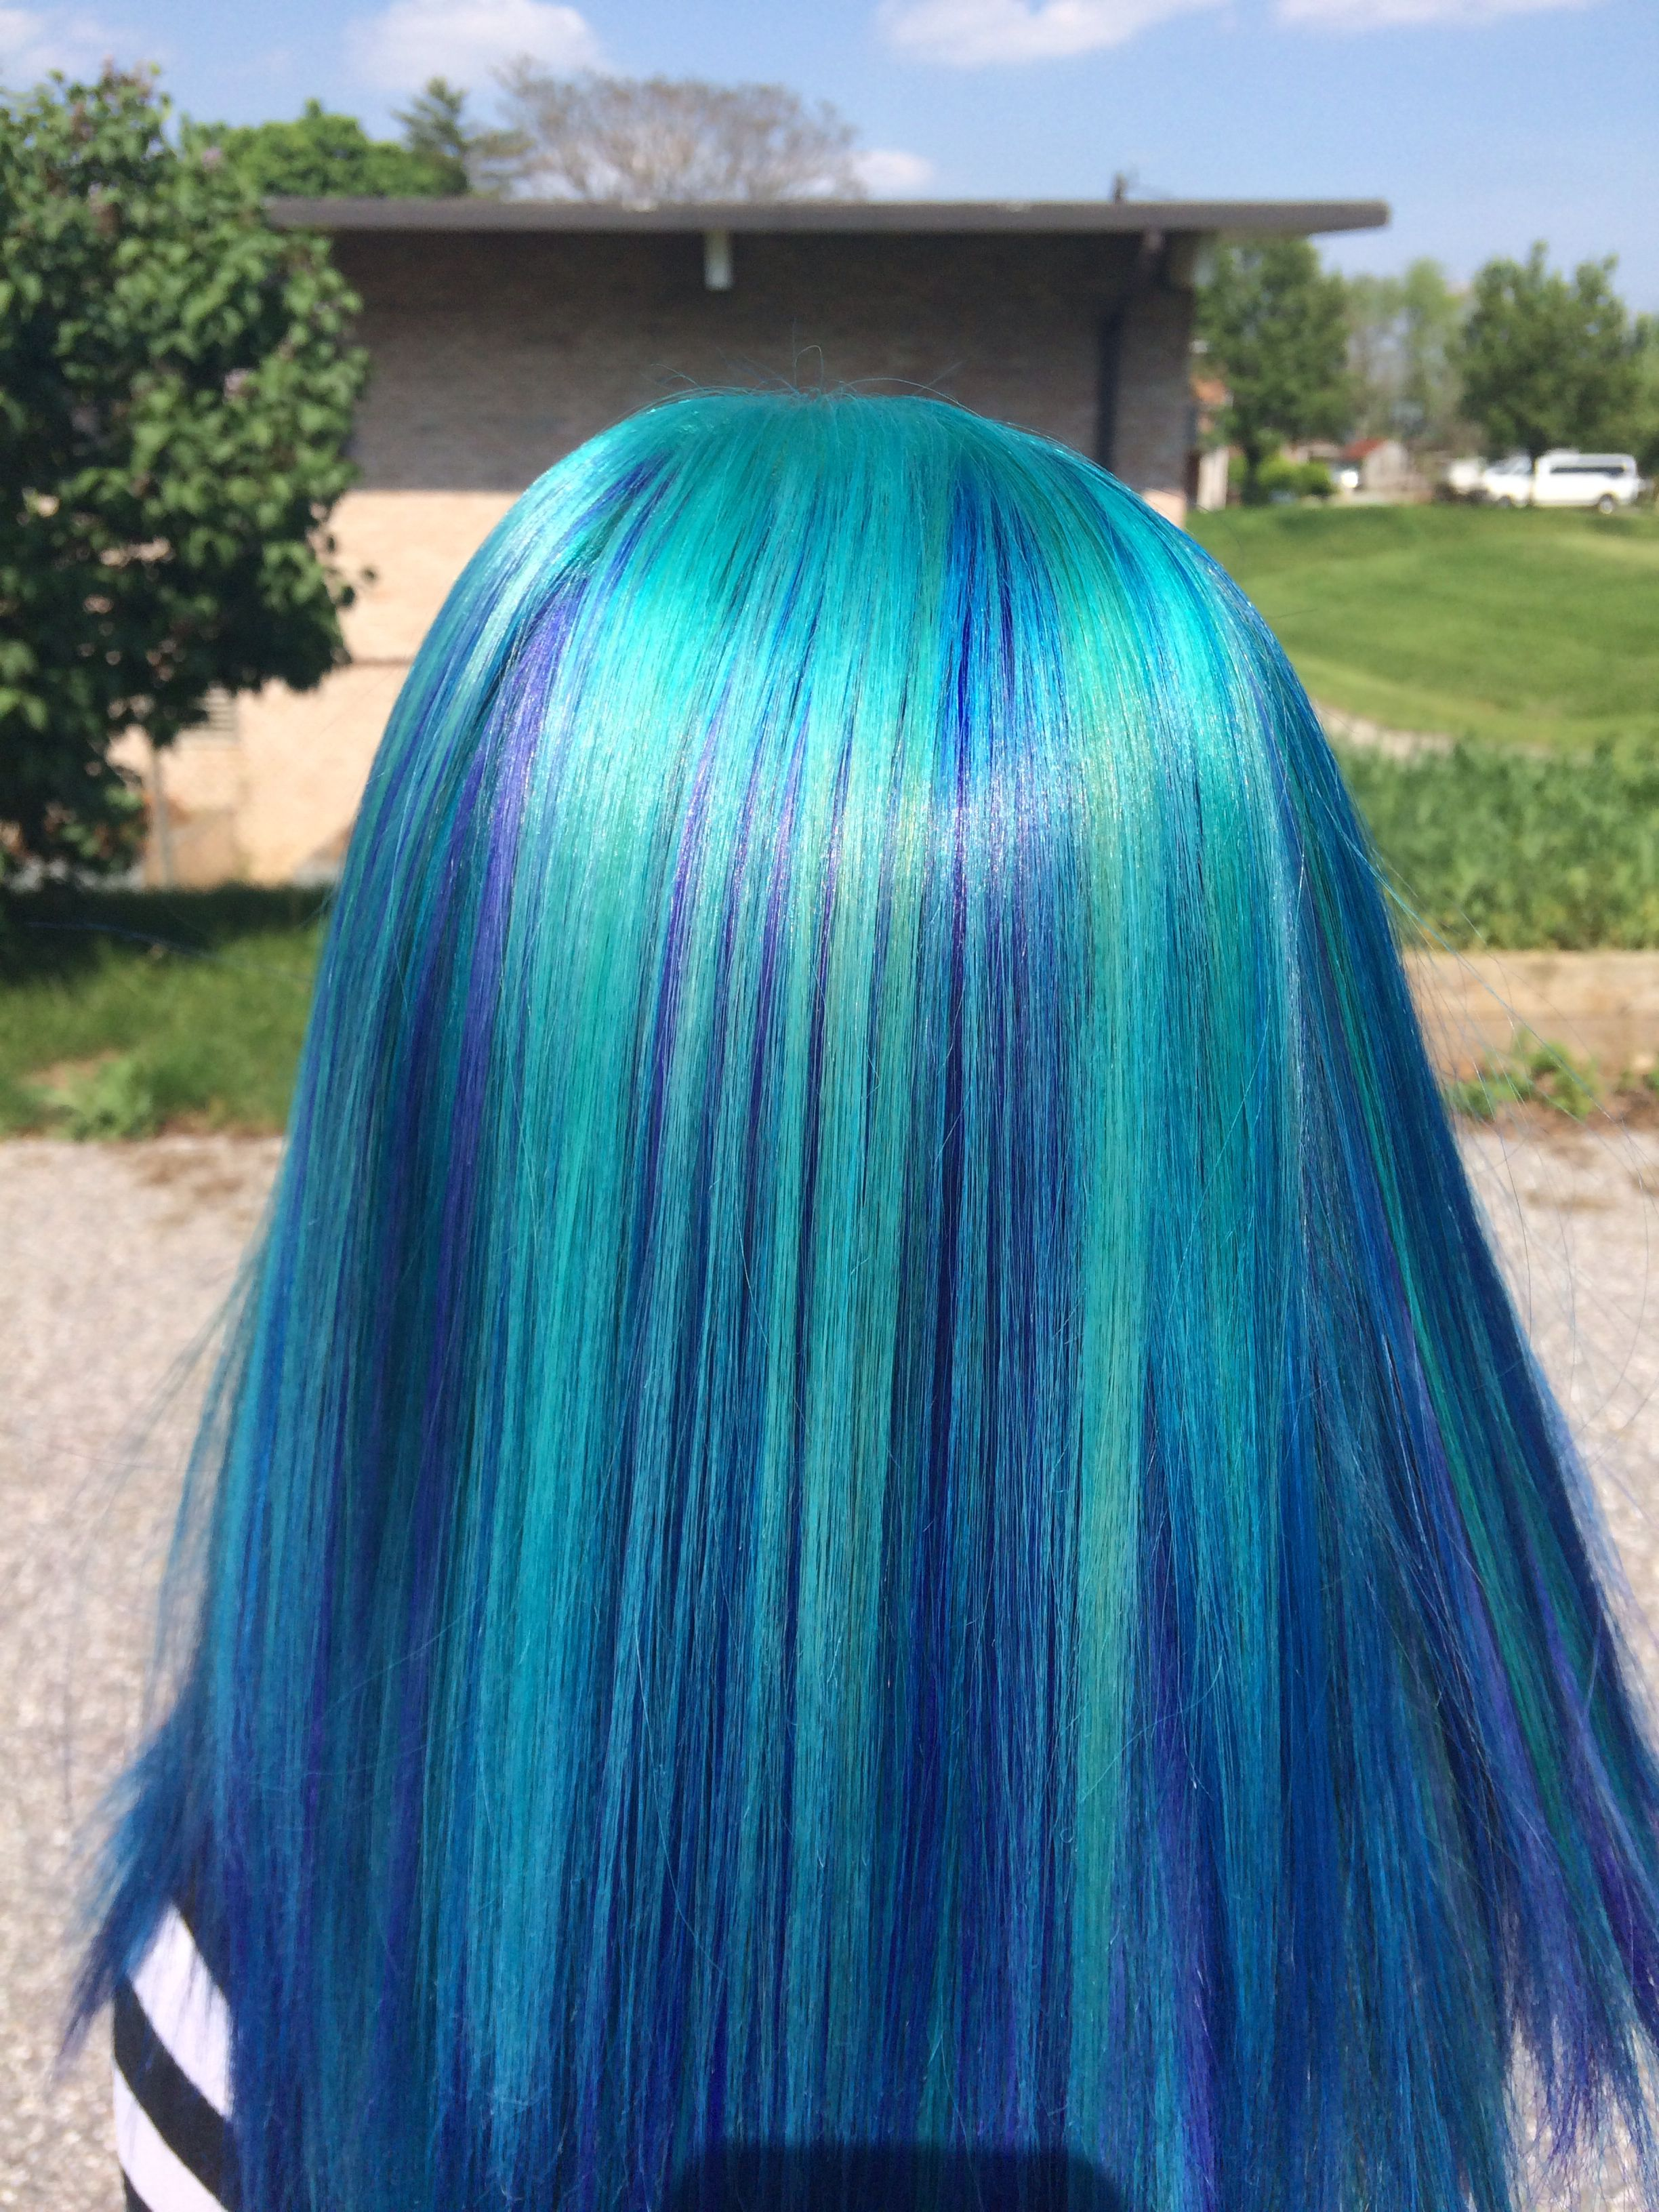 Minted blue hair color done with joico color intensities joico